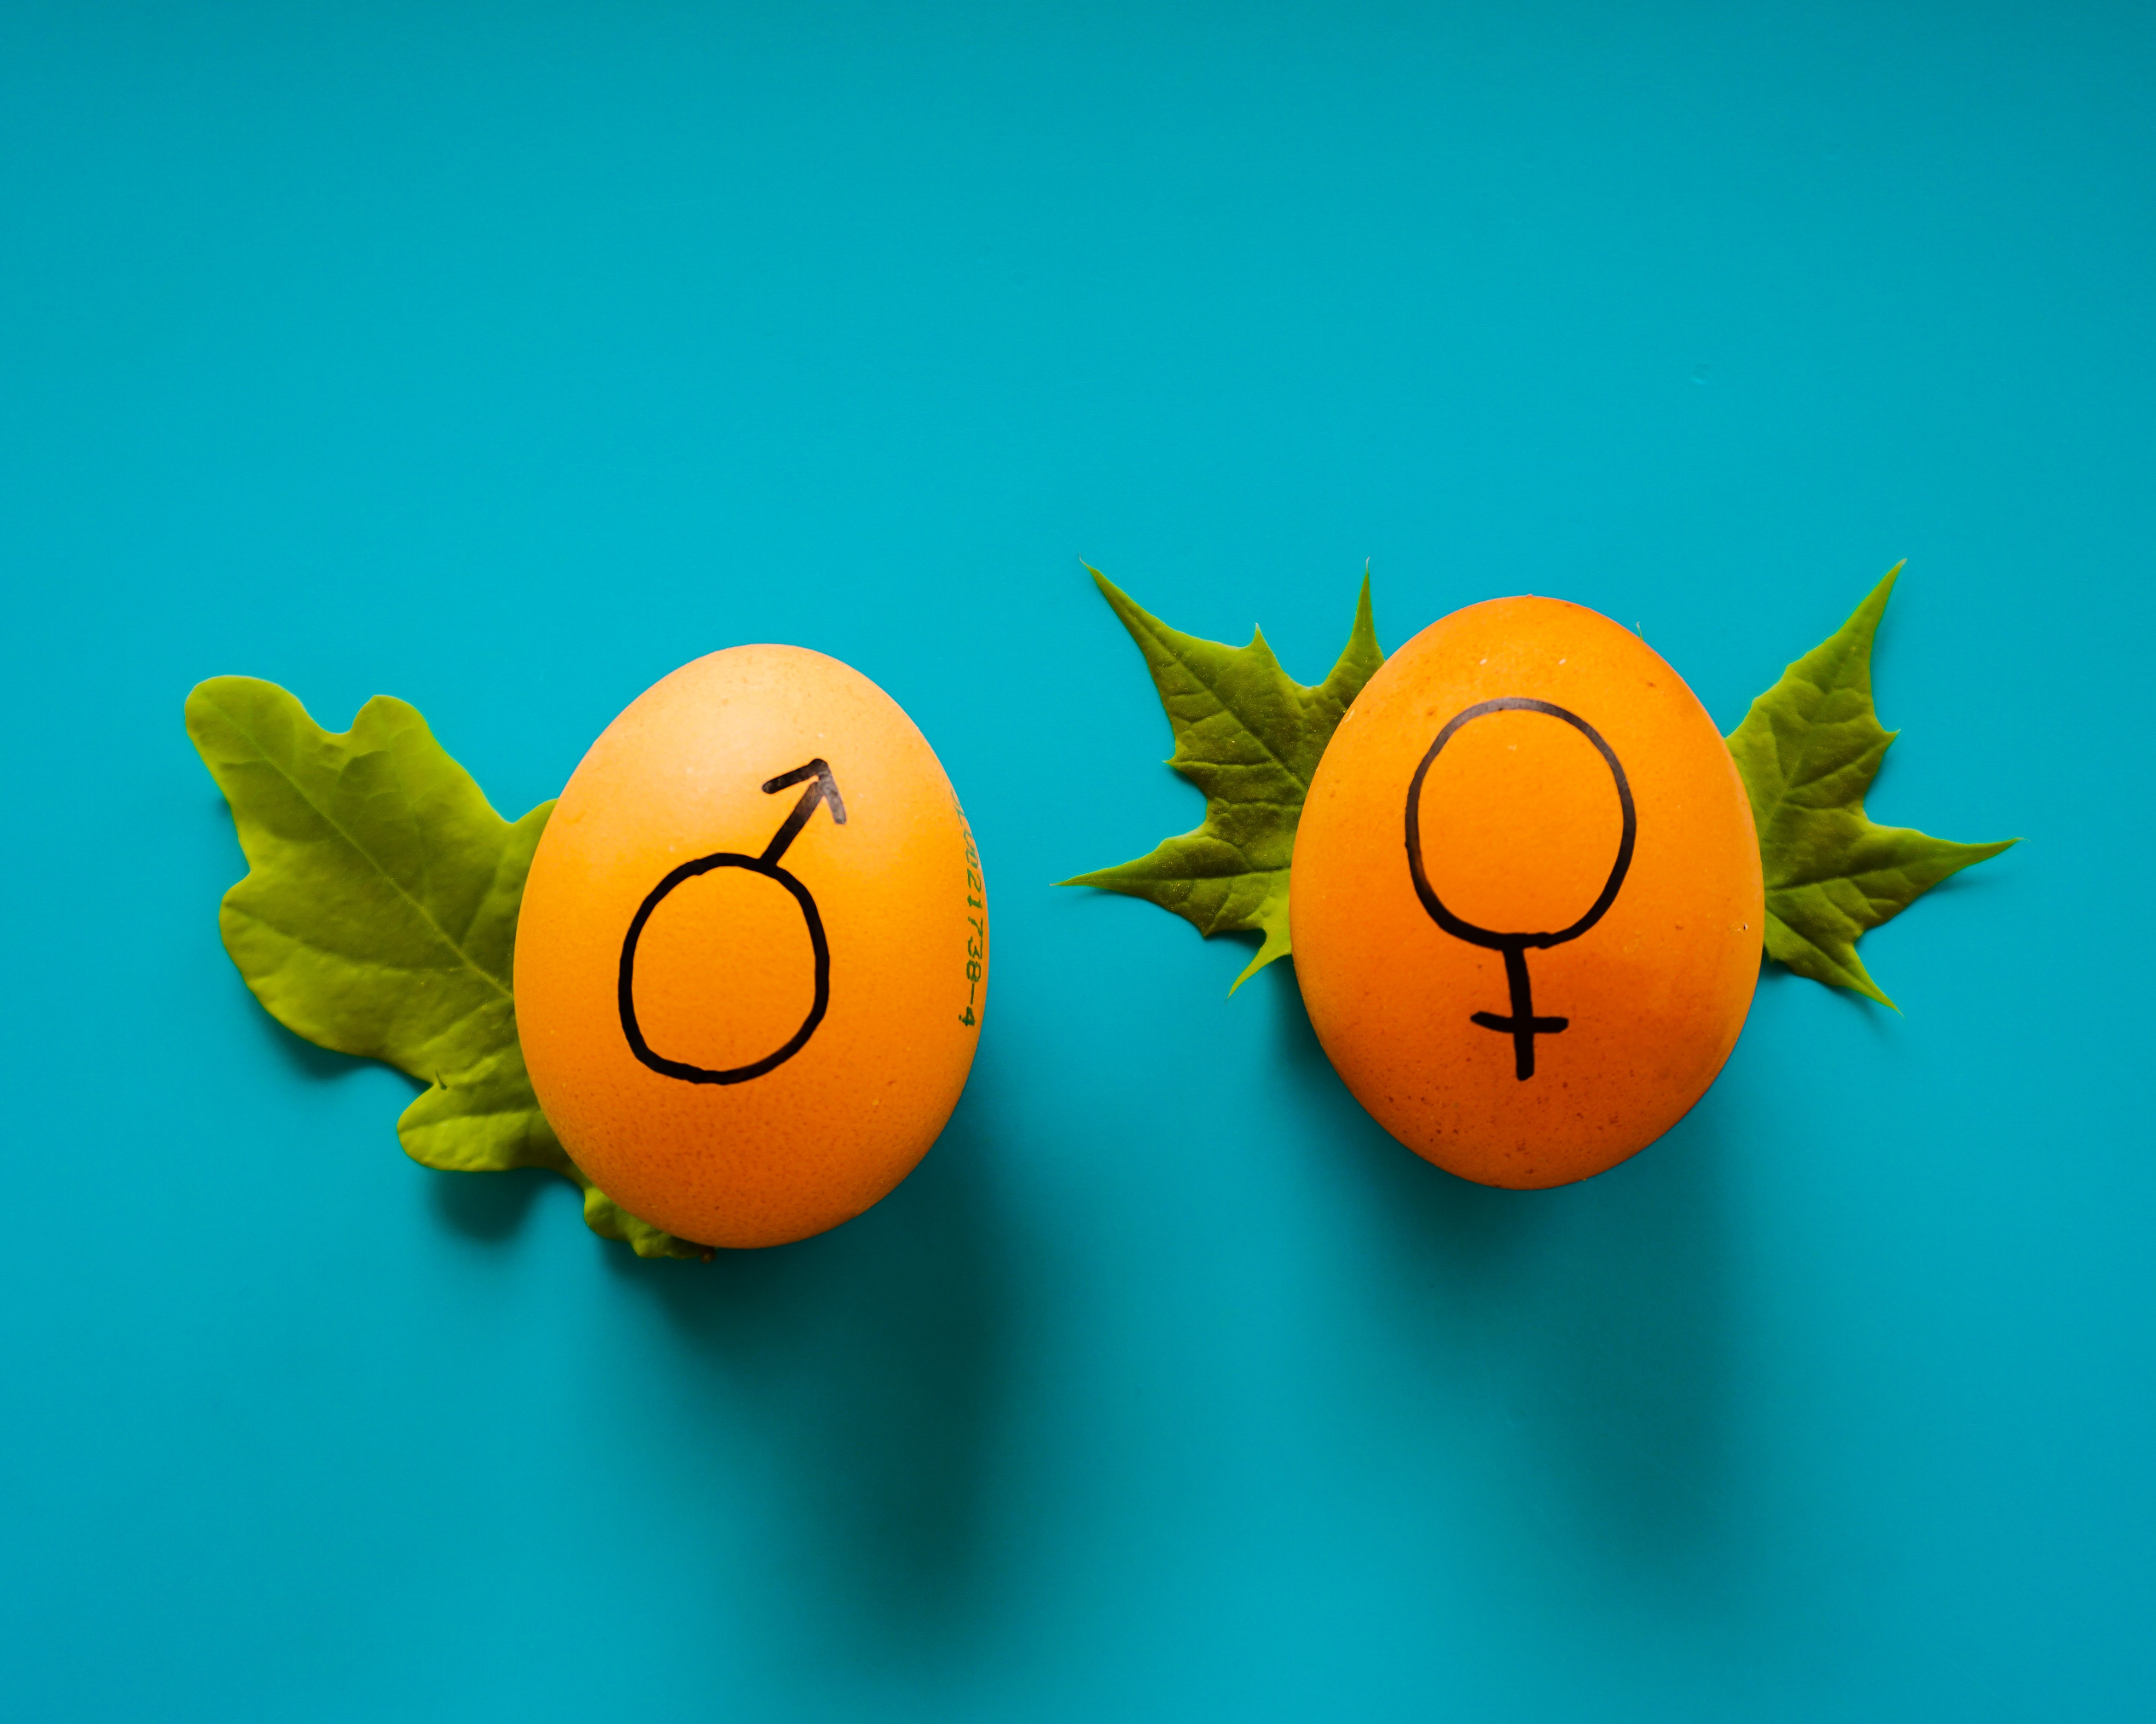 Two eggs with painted male and female gender symbols